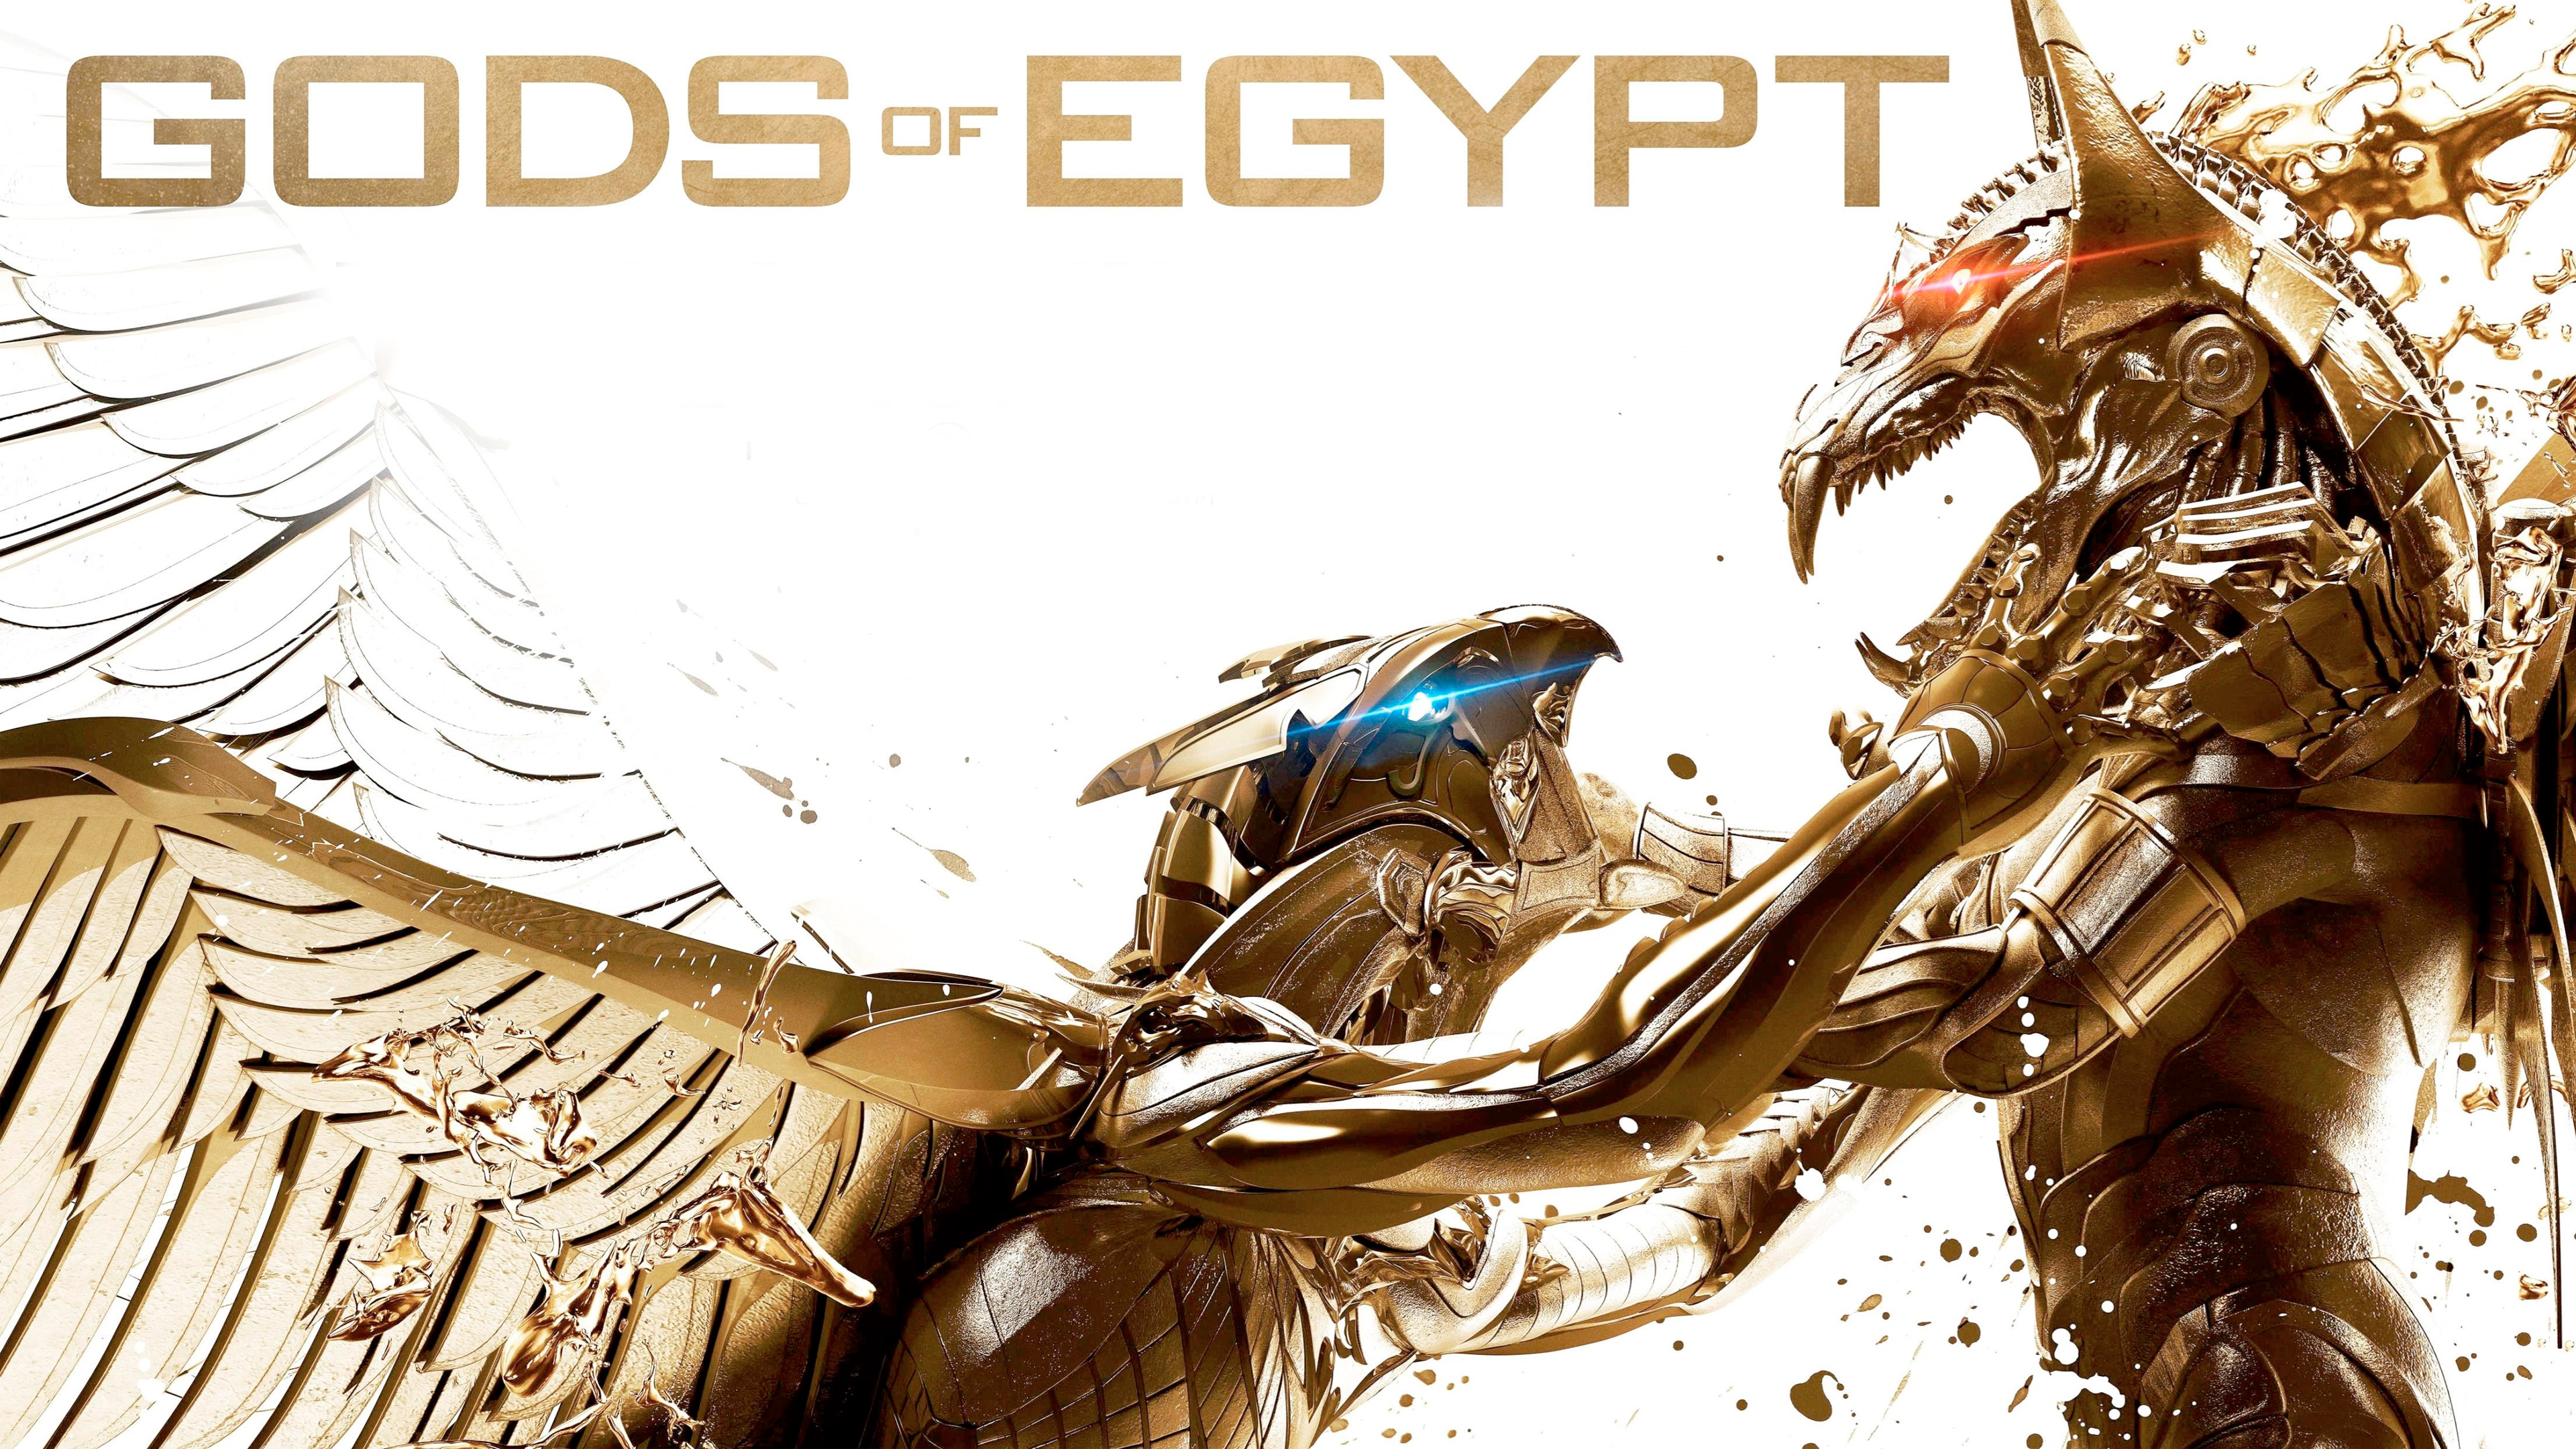 Gods of Egypt Movie Wallpapers HD Wallpapers 3840x2160